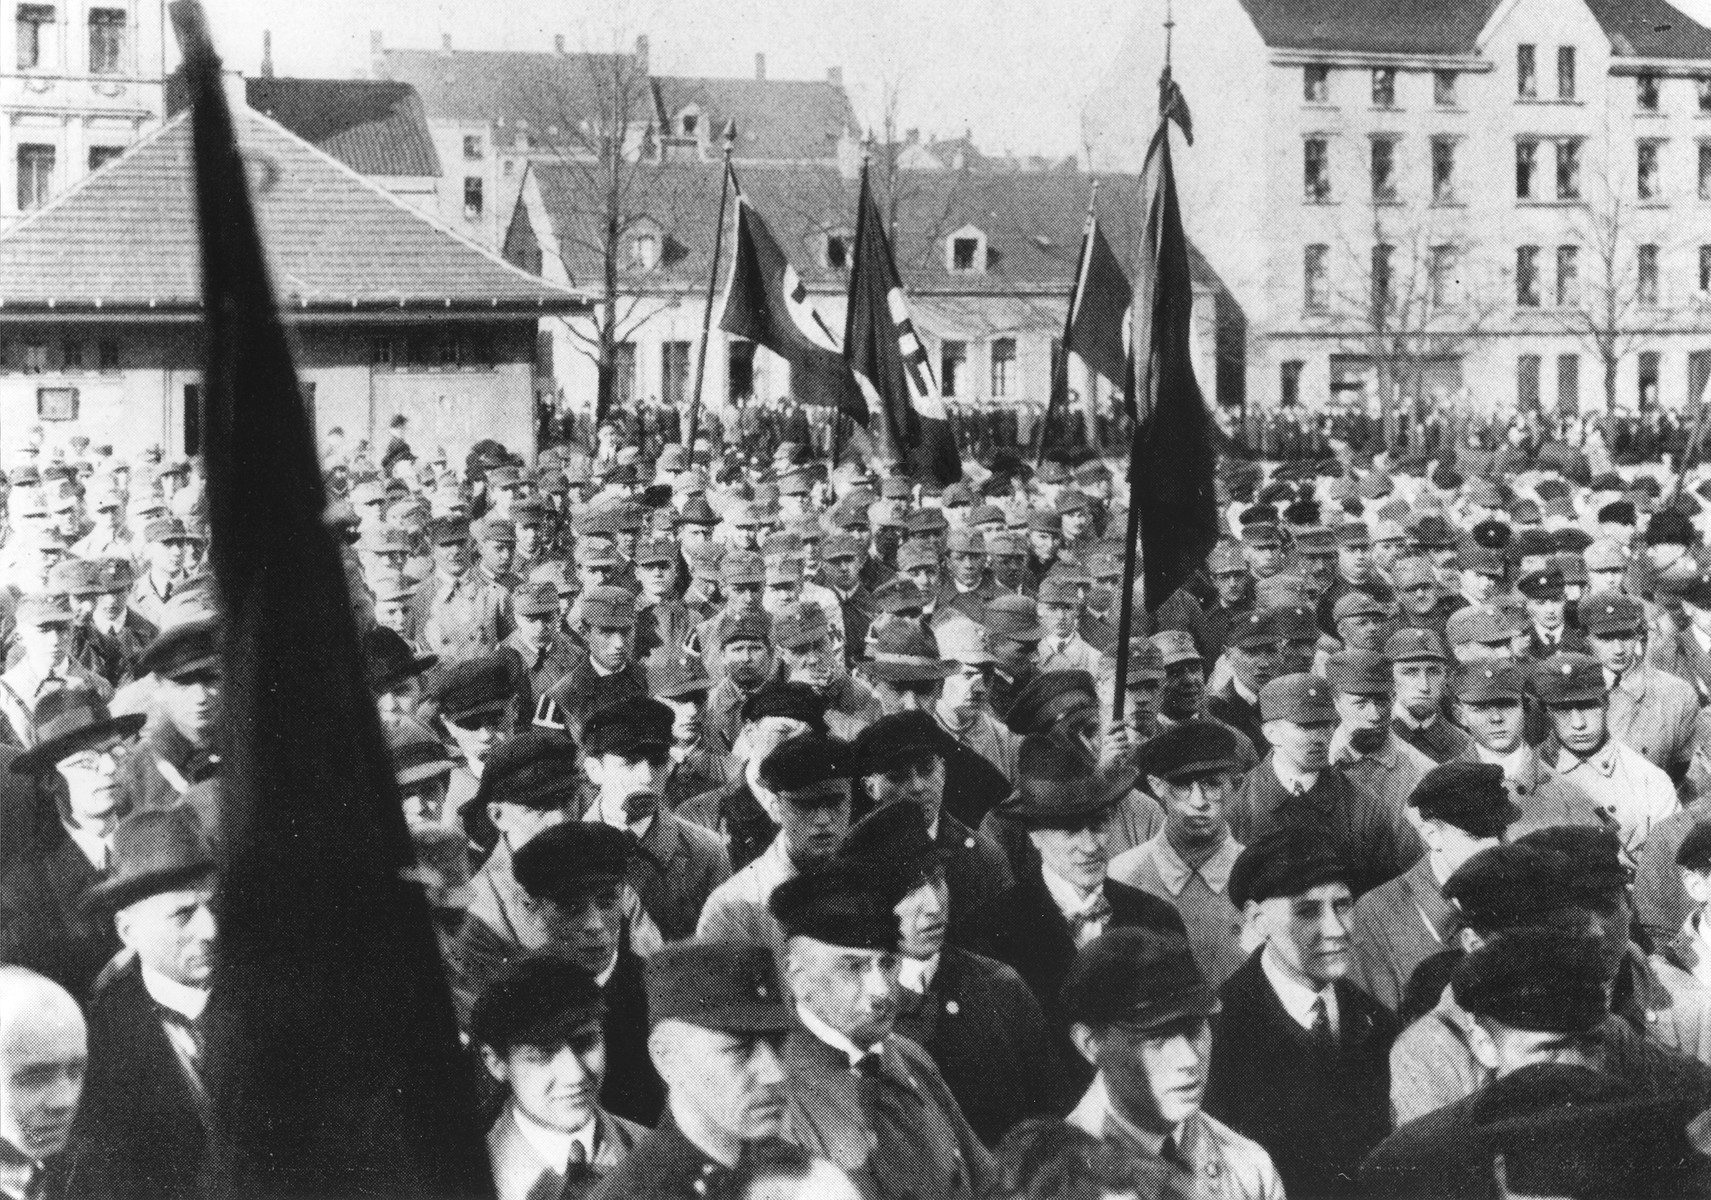 Members of the SA stand in formation during a Nazi rally in the Ruhr.